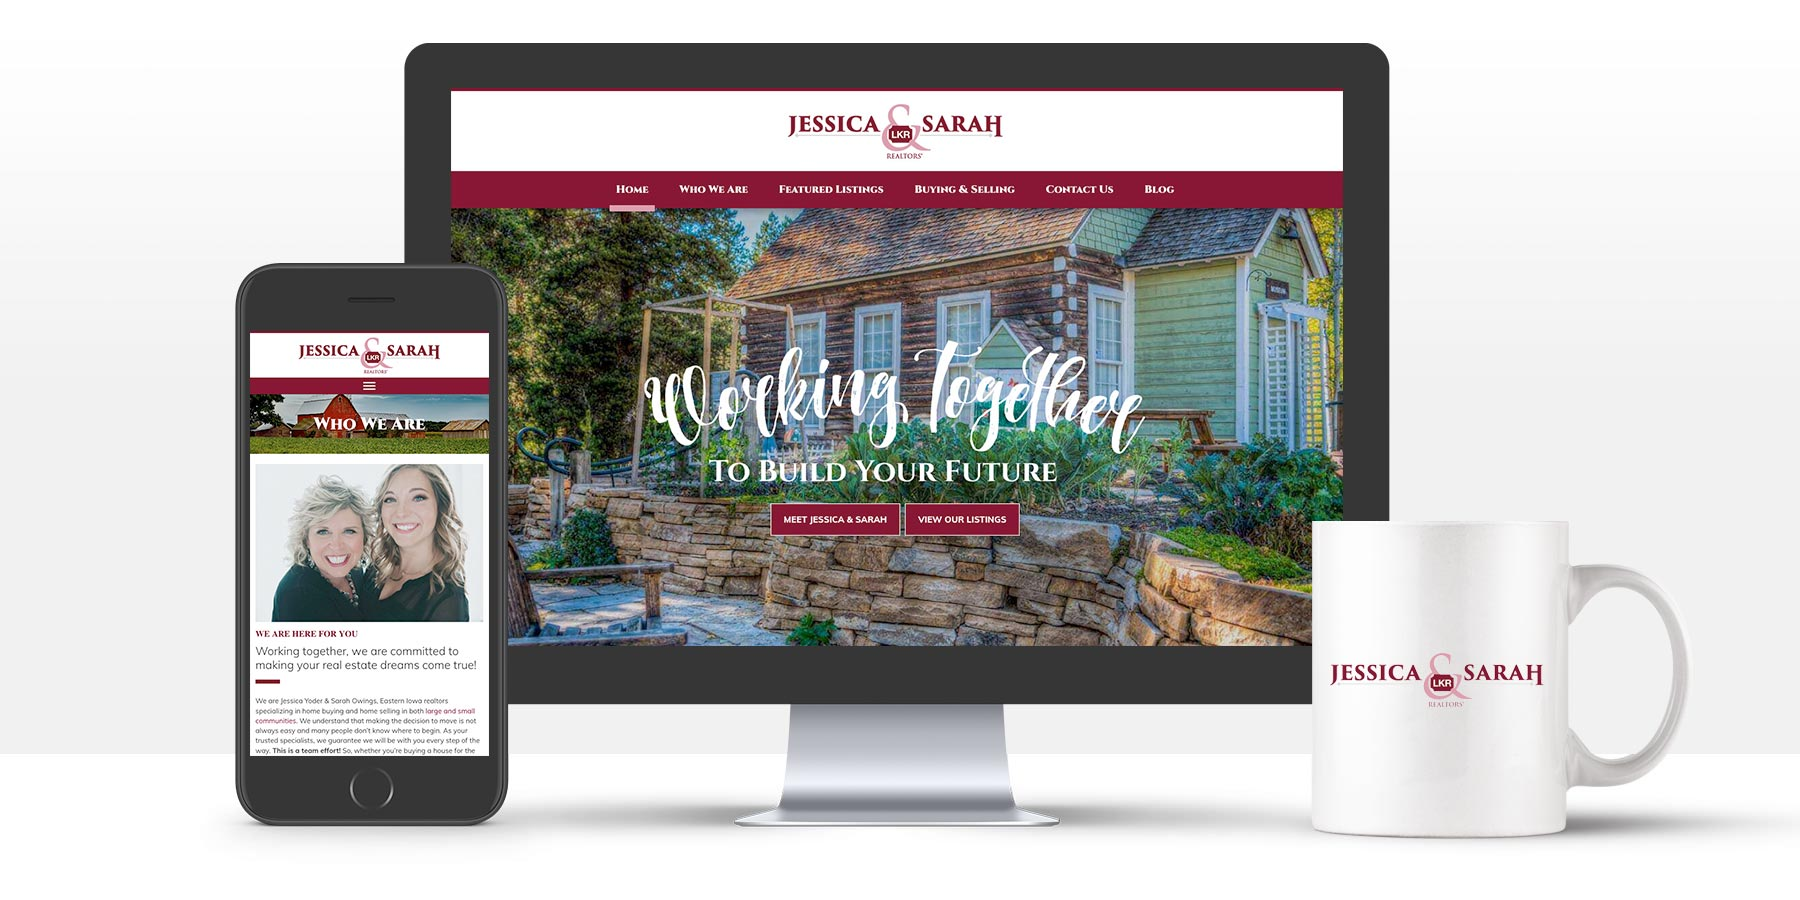 Jessica and Sarah Realtor website in desktop and mobile